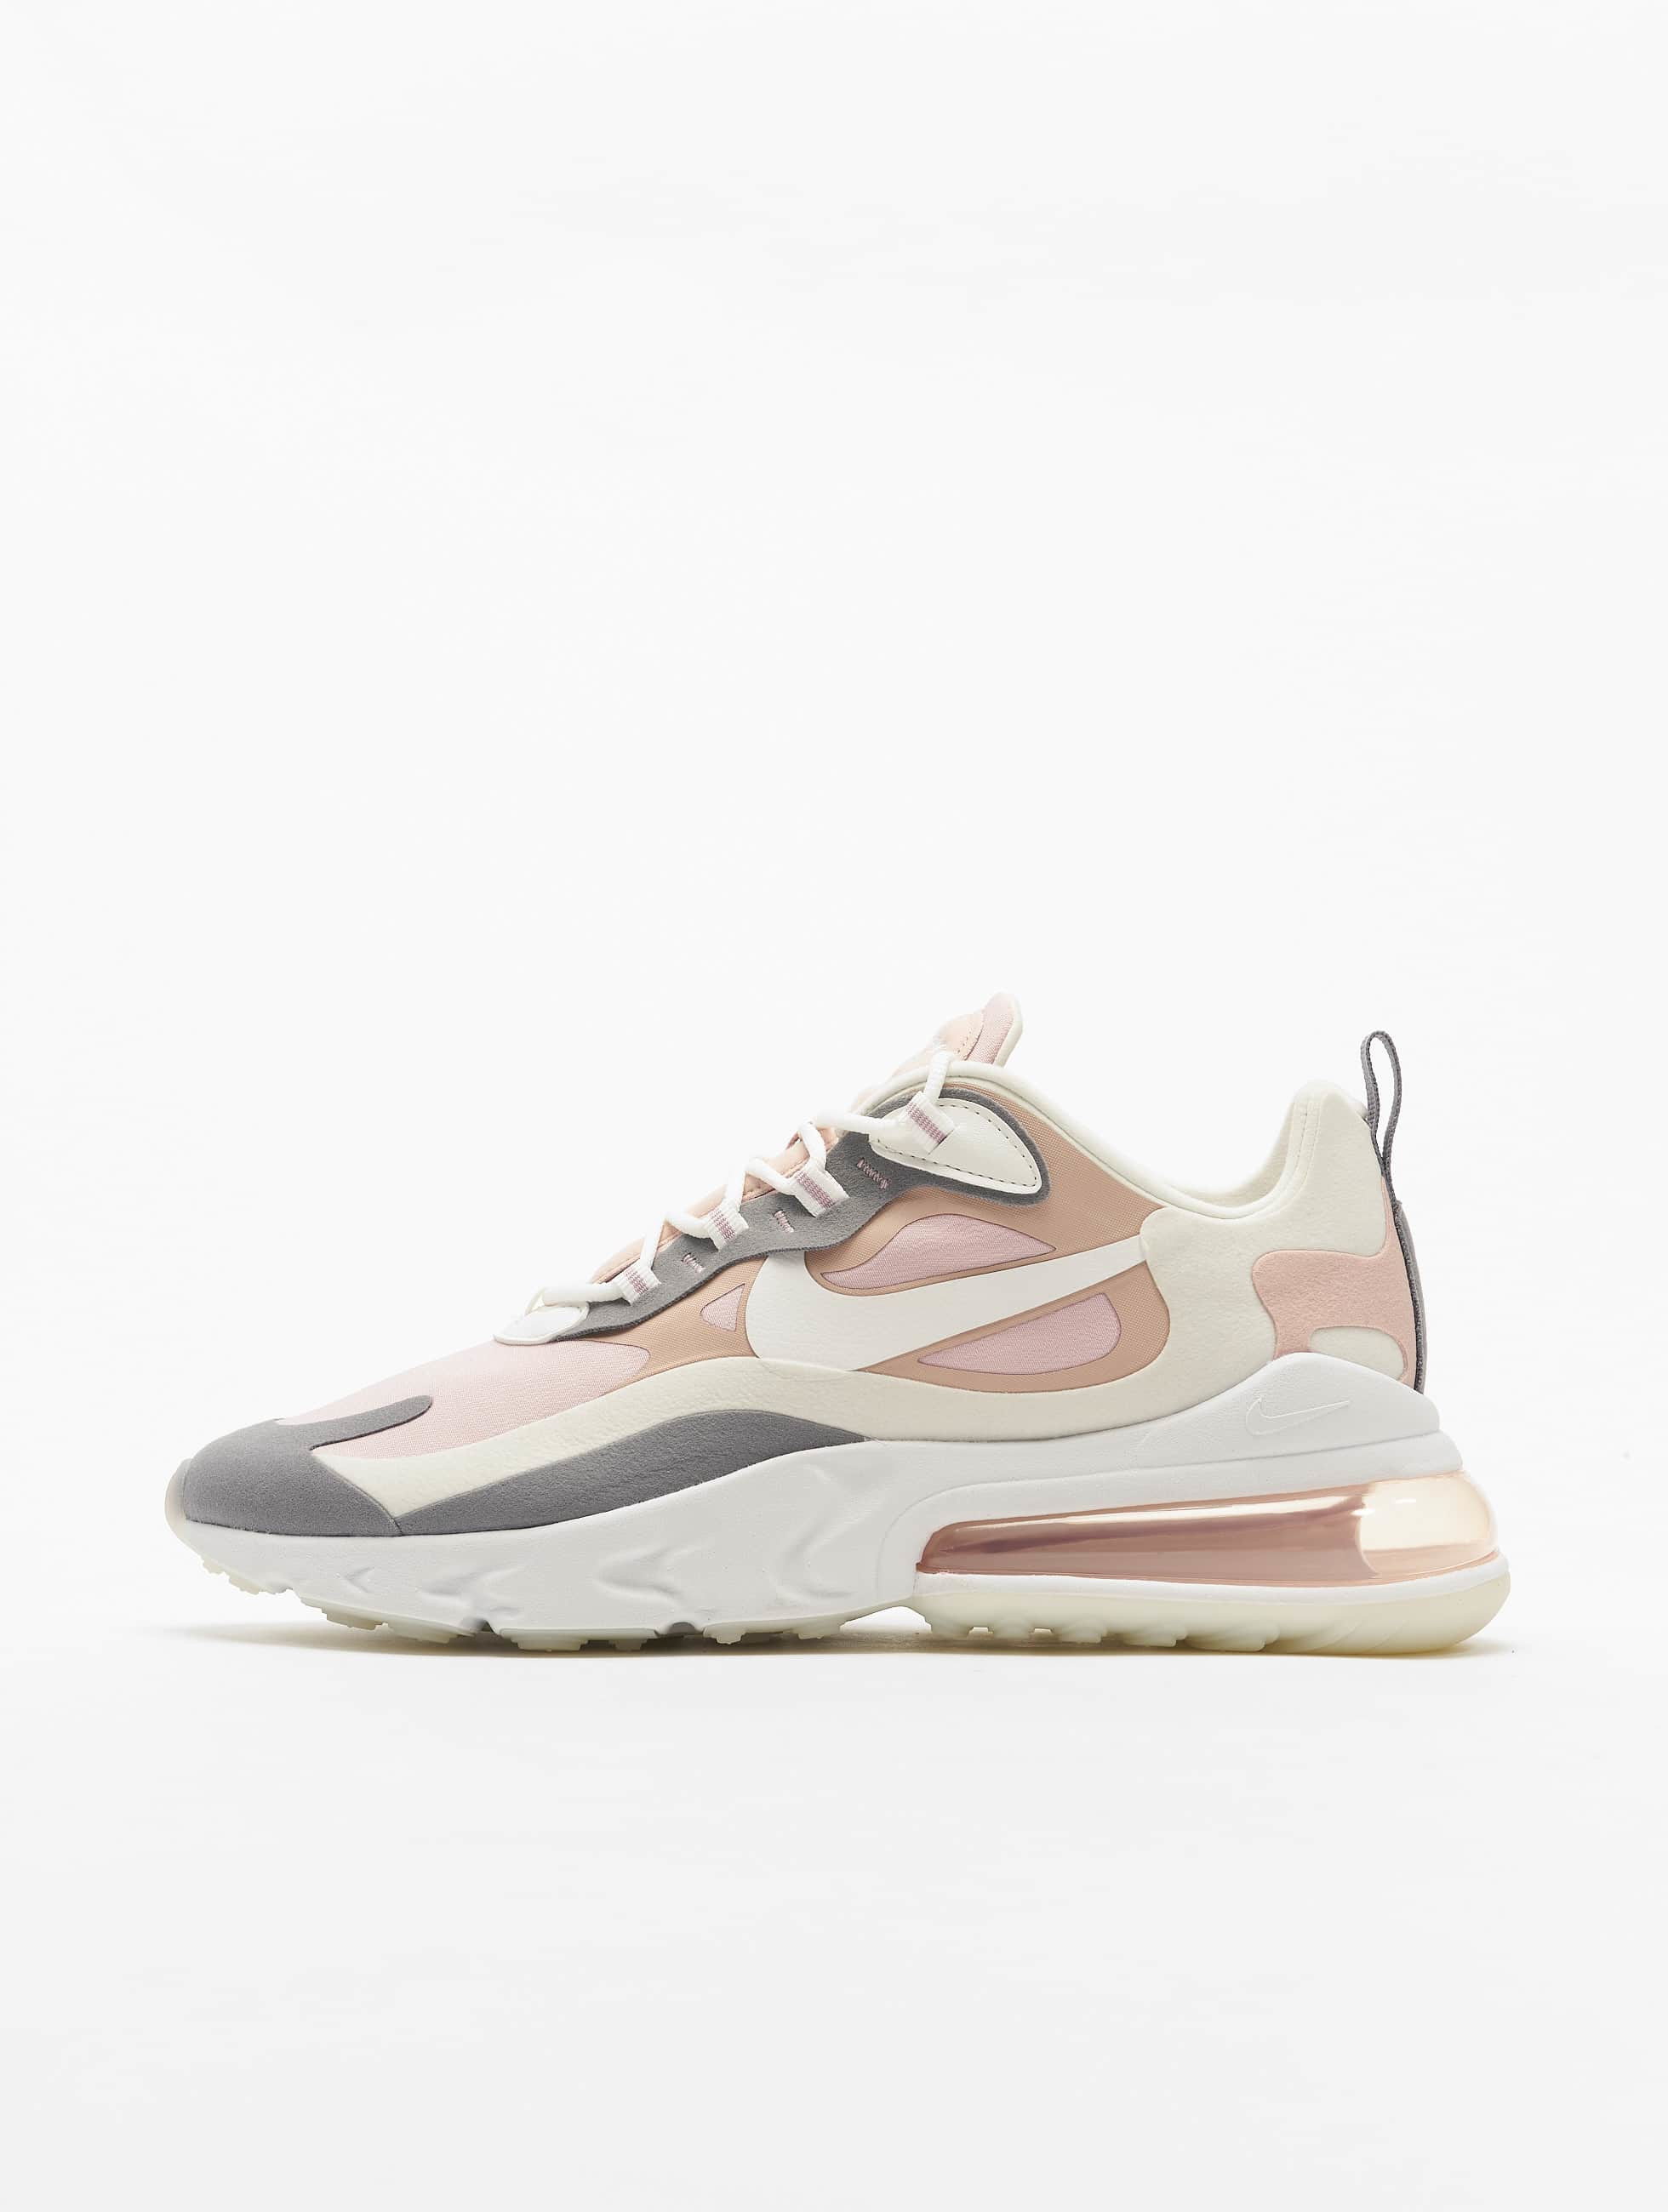 Nike Air Max 270 React Sneakers Plum ChalkSummit WhiteStone Mauve